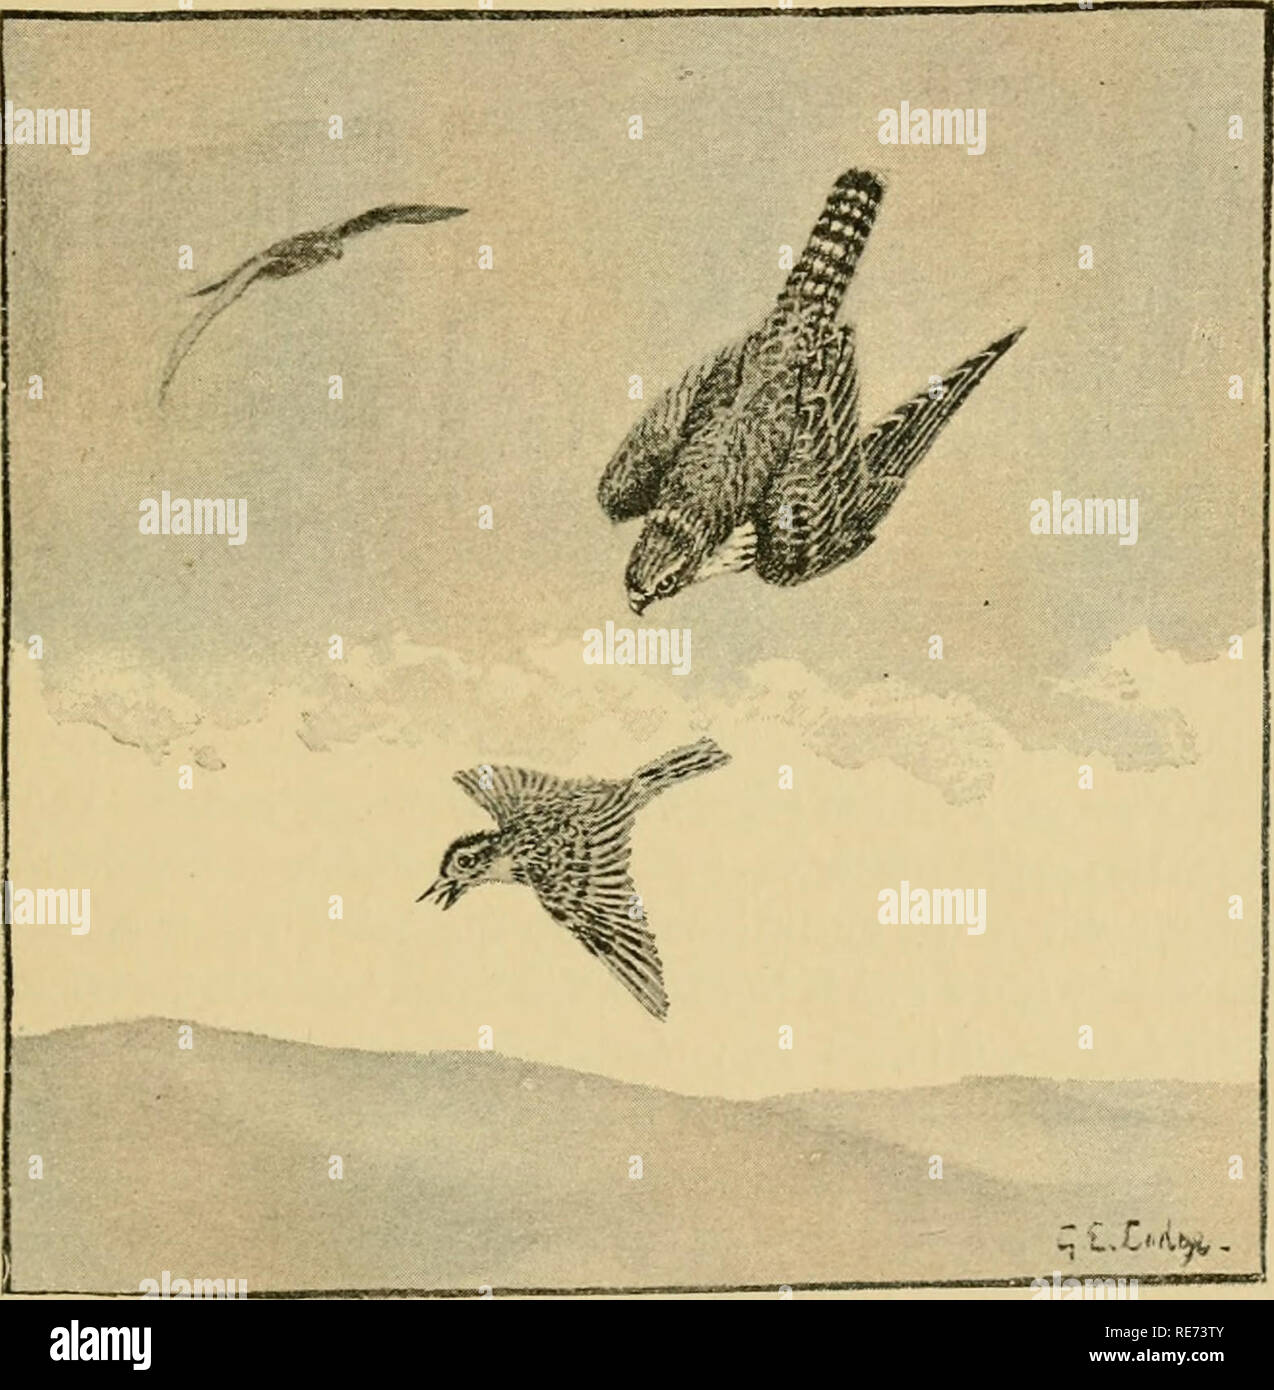 . Coursing and falconry. Coursing; Falconry; CHR 1892; PRO Stewardson, Misses (donor). MERLINS way many times, and have also hacked them, and we have found those reared in a room prove just as good fliers as those that had been hacked. It was also the method employed by Mr. Newcome, who was very successful with these little hawks. Whether hacked or not, merlins will do better loose in a room than on blocks or perches. On days when they are to be. Lark hawking flown they can be taken up, and after being given a few mouthfuls in the morning, set down on small-sized blocks or on the bow-perch (se - Stock Image